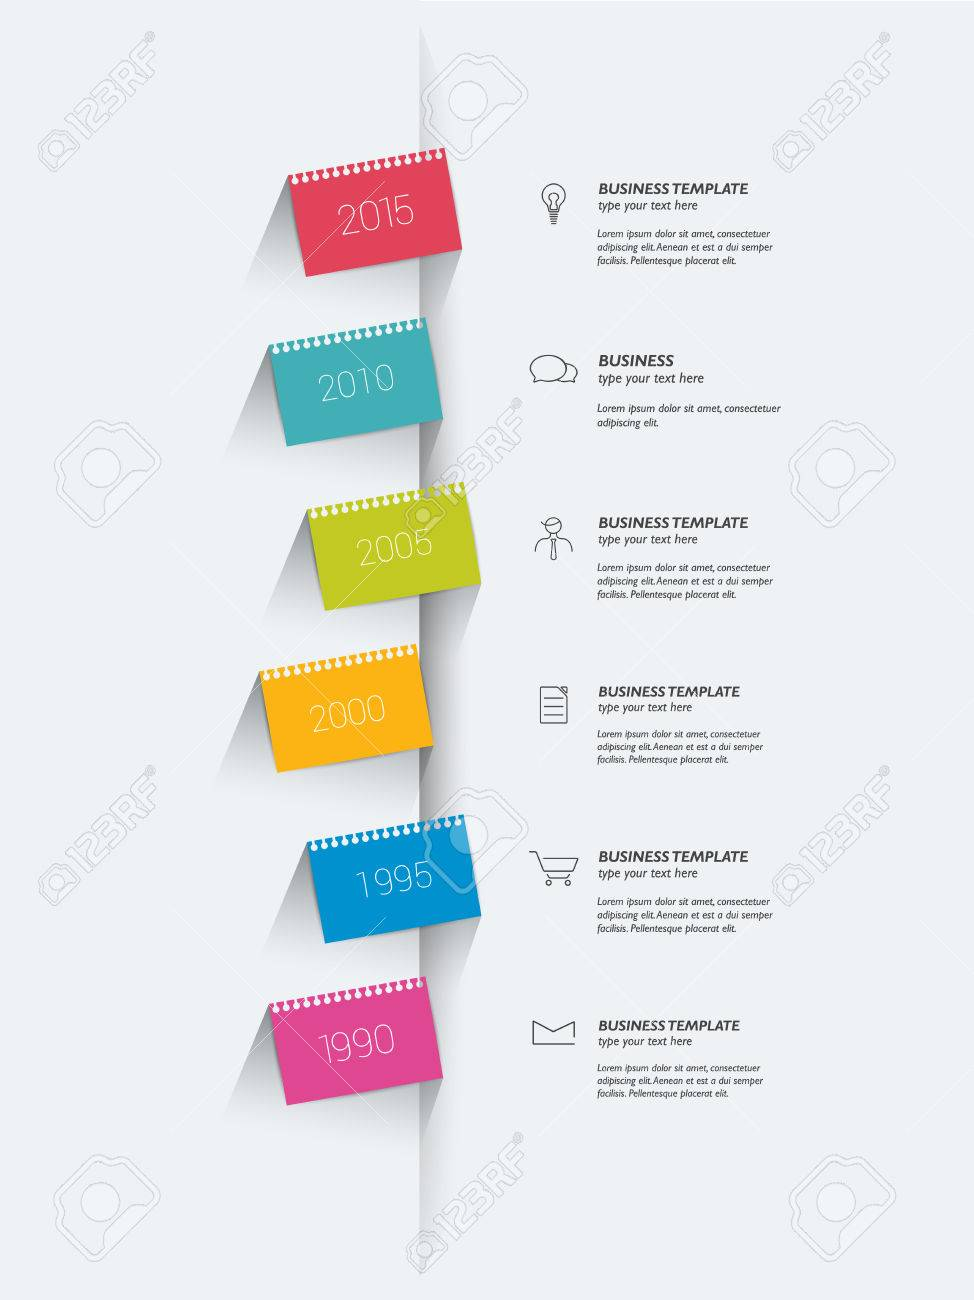 Stickers Template. Text Area Design. Royalty Free Cliparts, Vectors ...